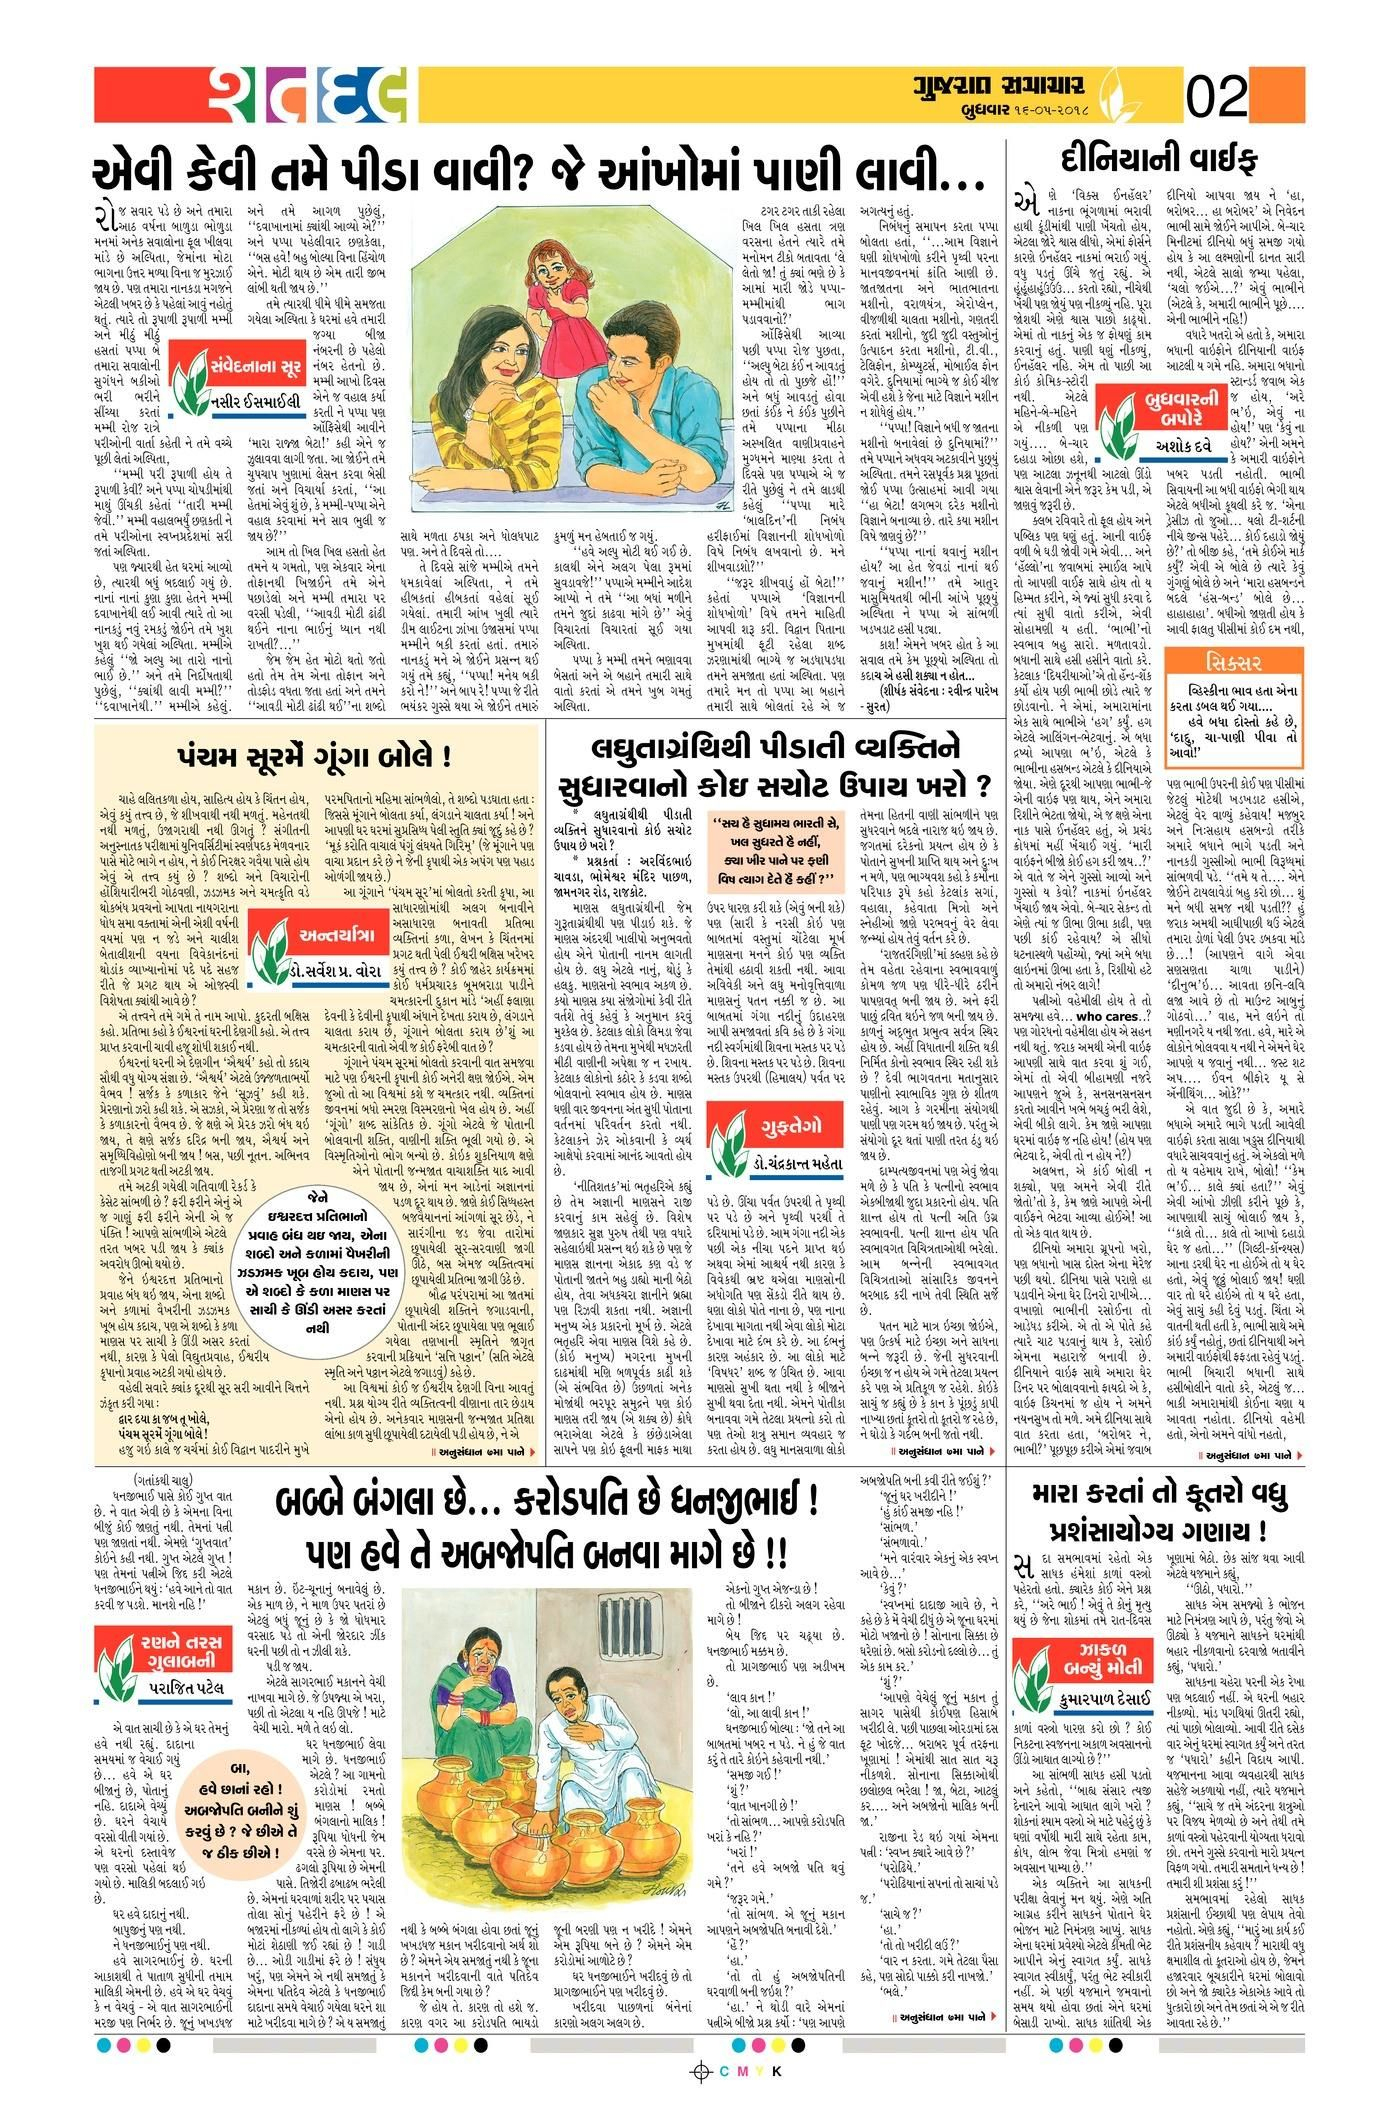 Gujarat Samachar Epaper Shatdal Edition | Icse | Bullet Journal - Printable Gujarati Crossword Puzzles